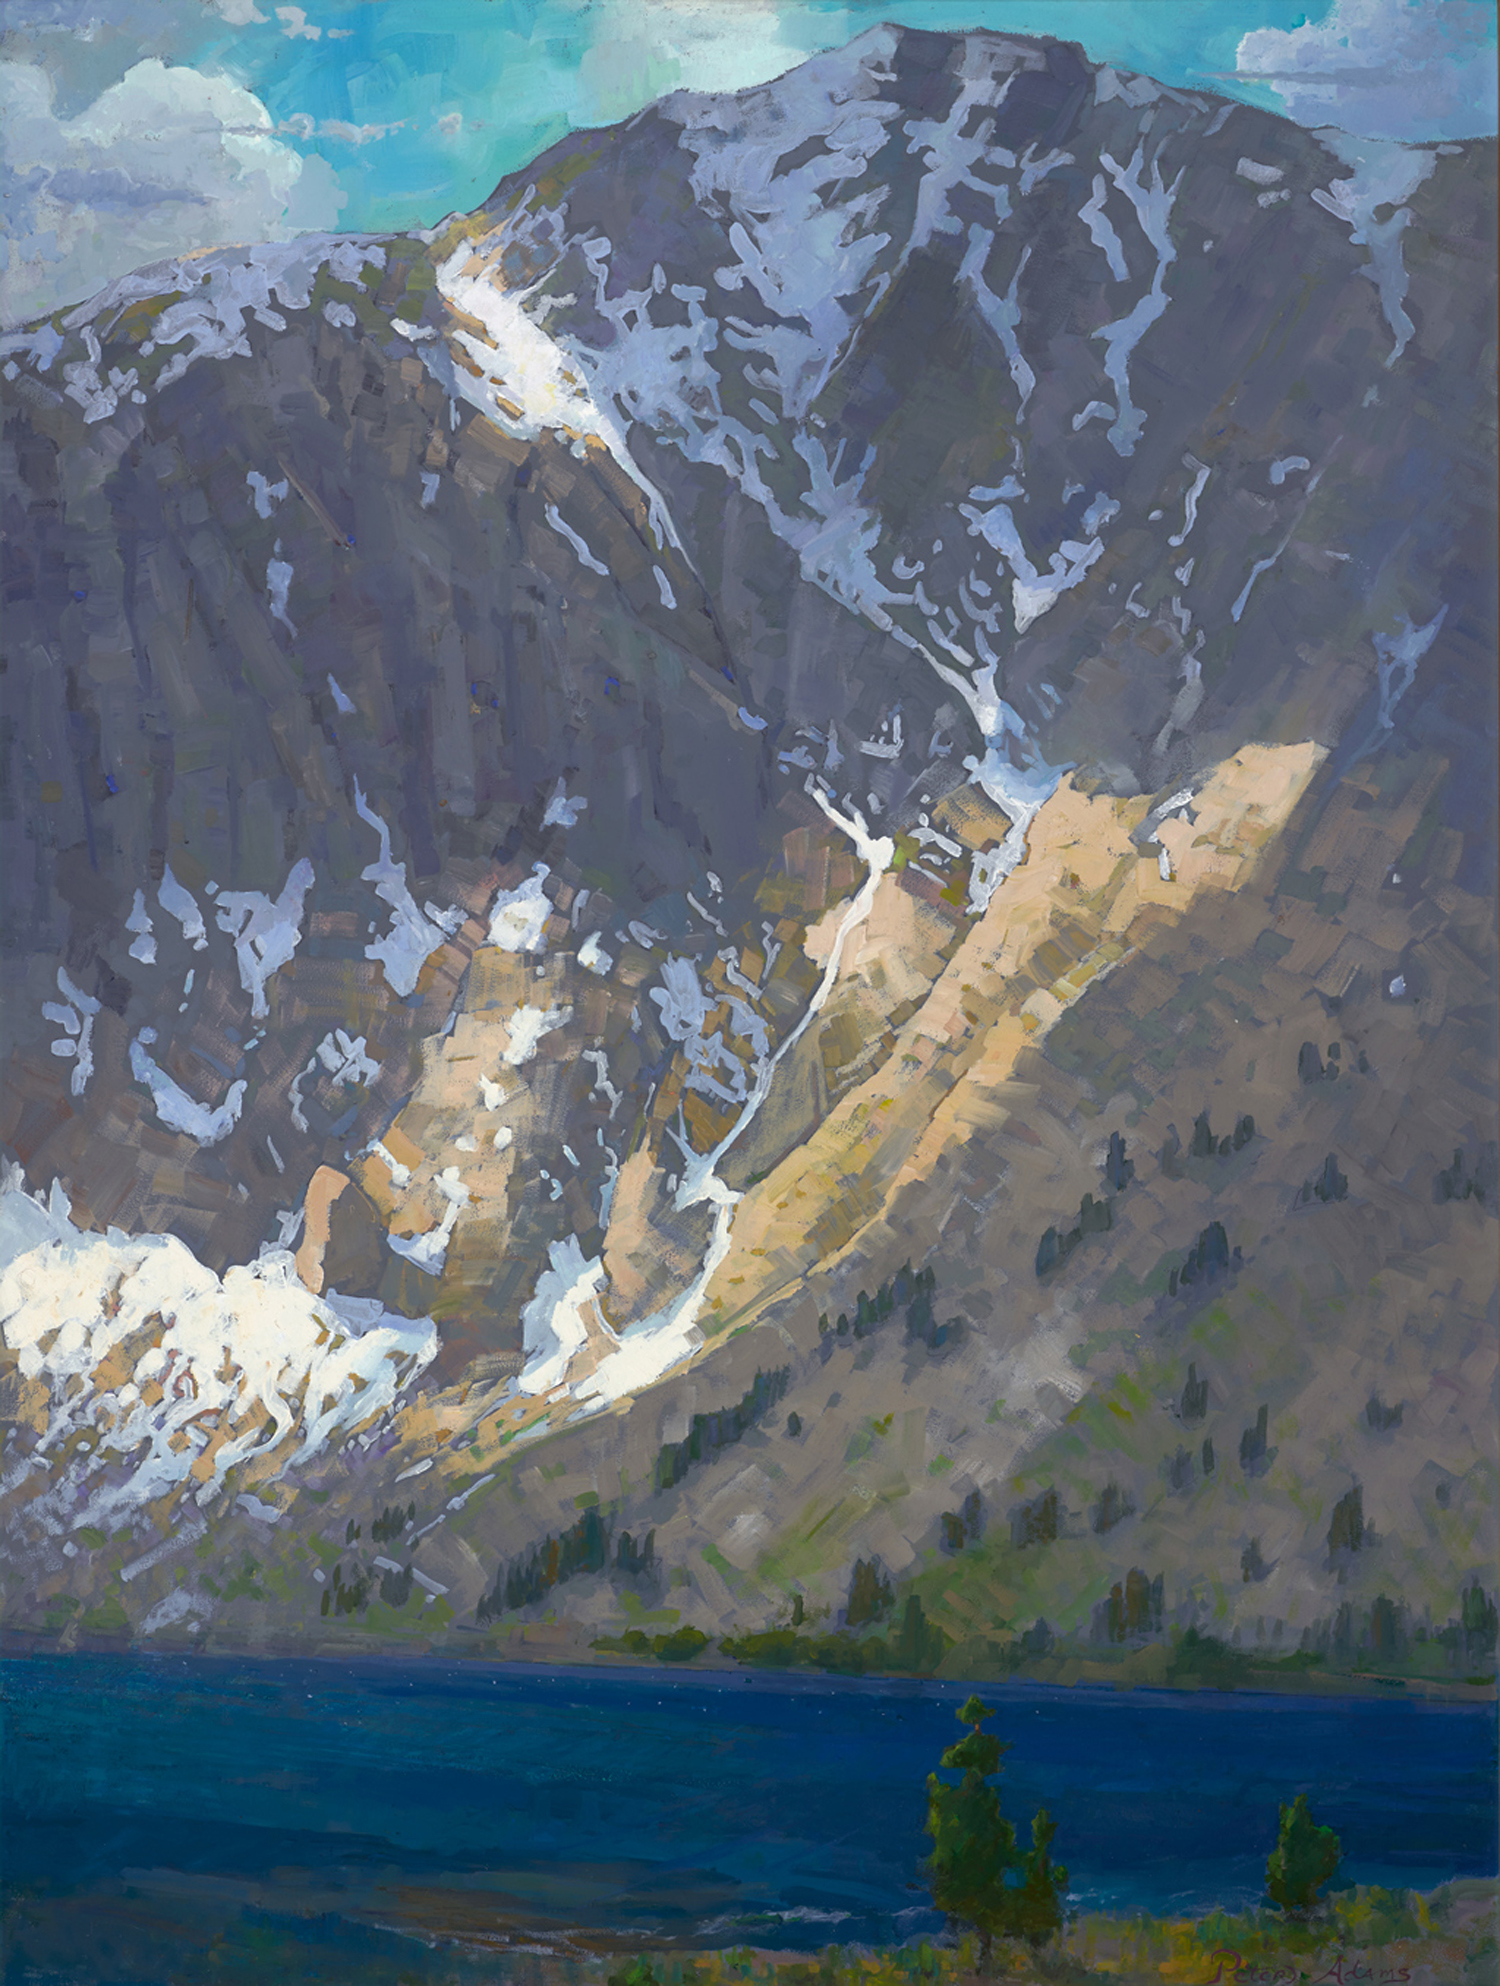 <i>Windy Afternoon, Convict Lake; Sierra Nevada</i>